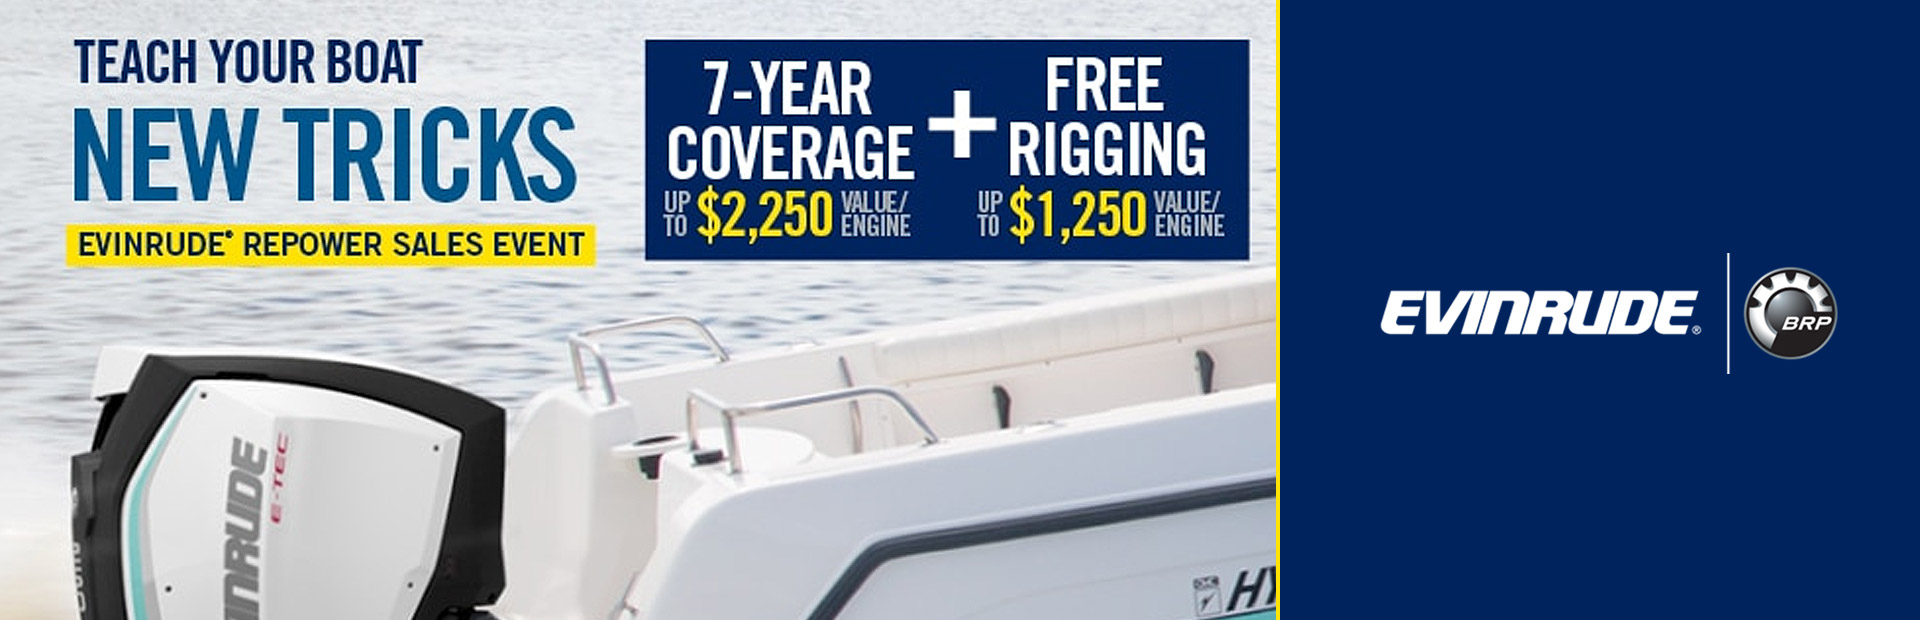 Evinrude: Evinrude® Repower Sales Event